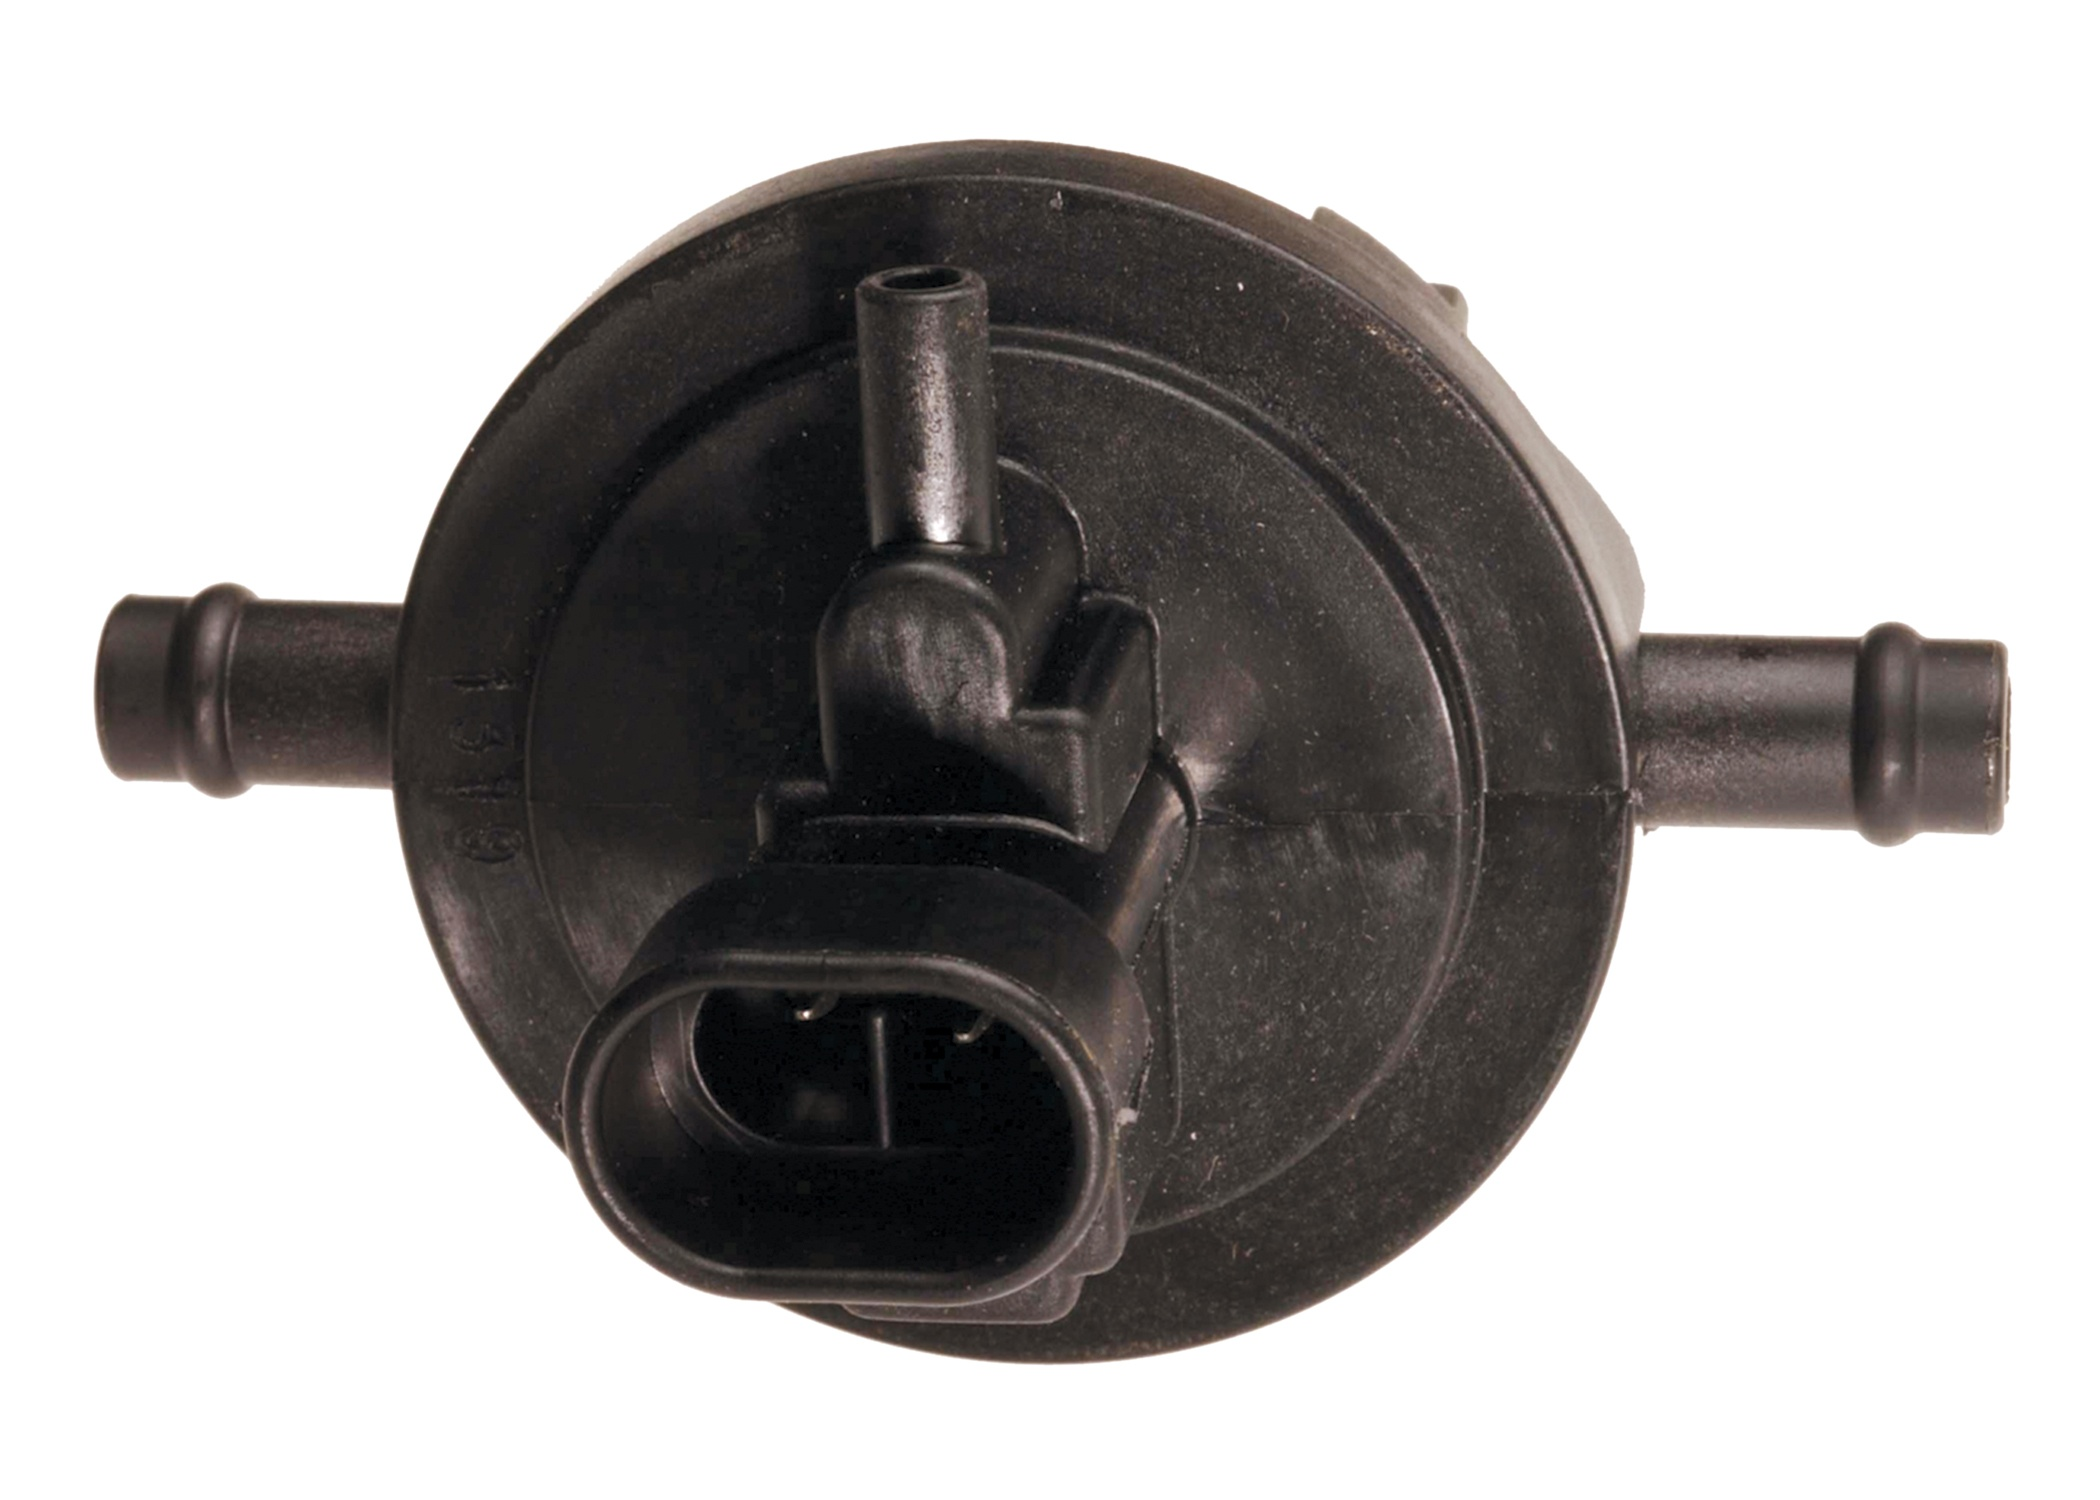 ACDELCO OE SERVICE - Evap Emission Canister Purge Vaccum Switch - DCB 212-358